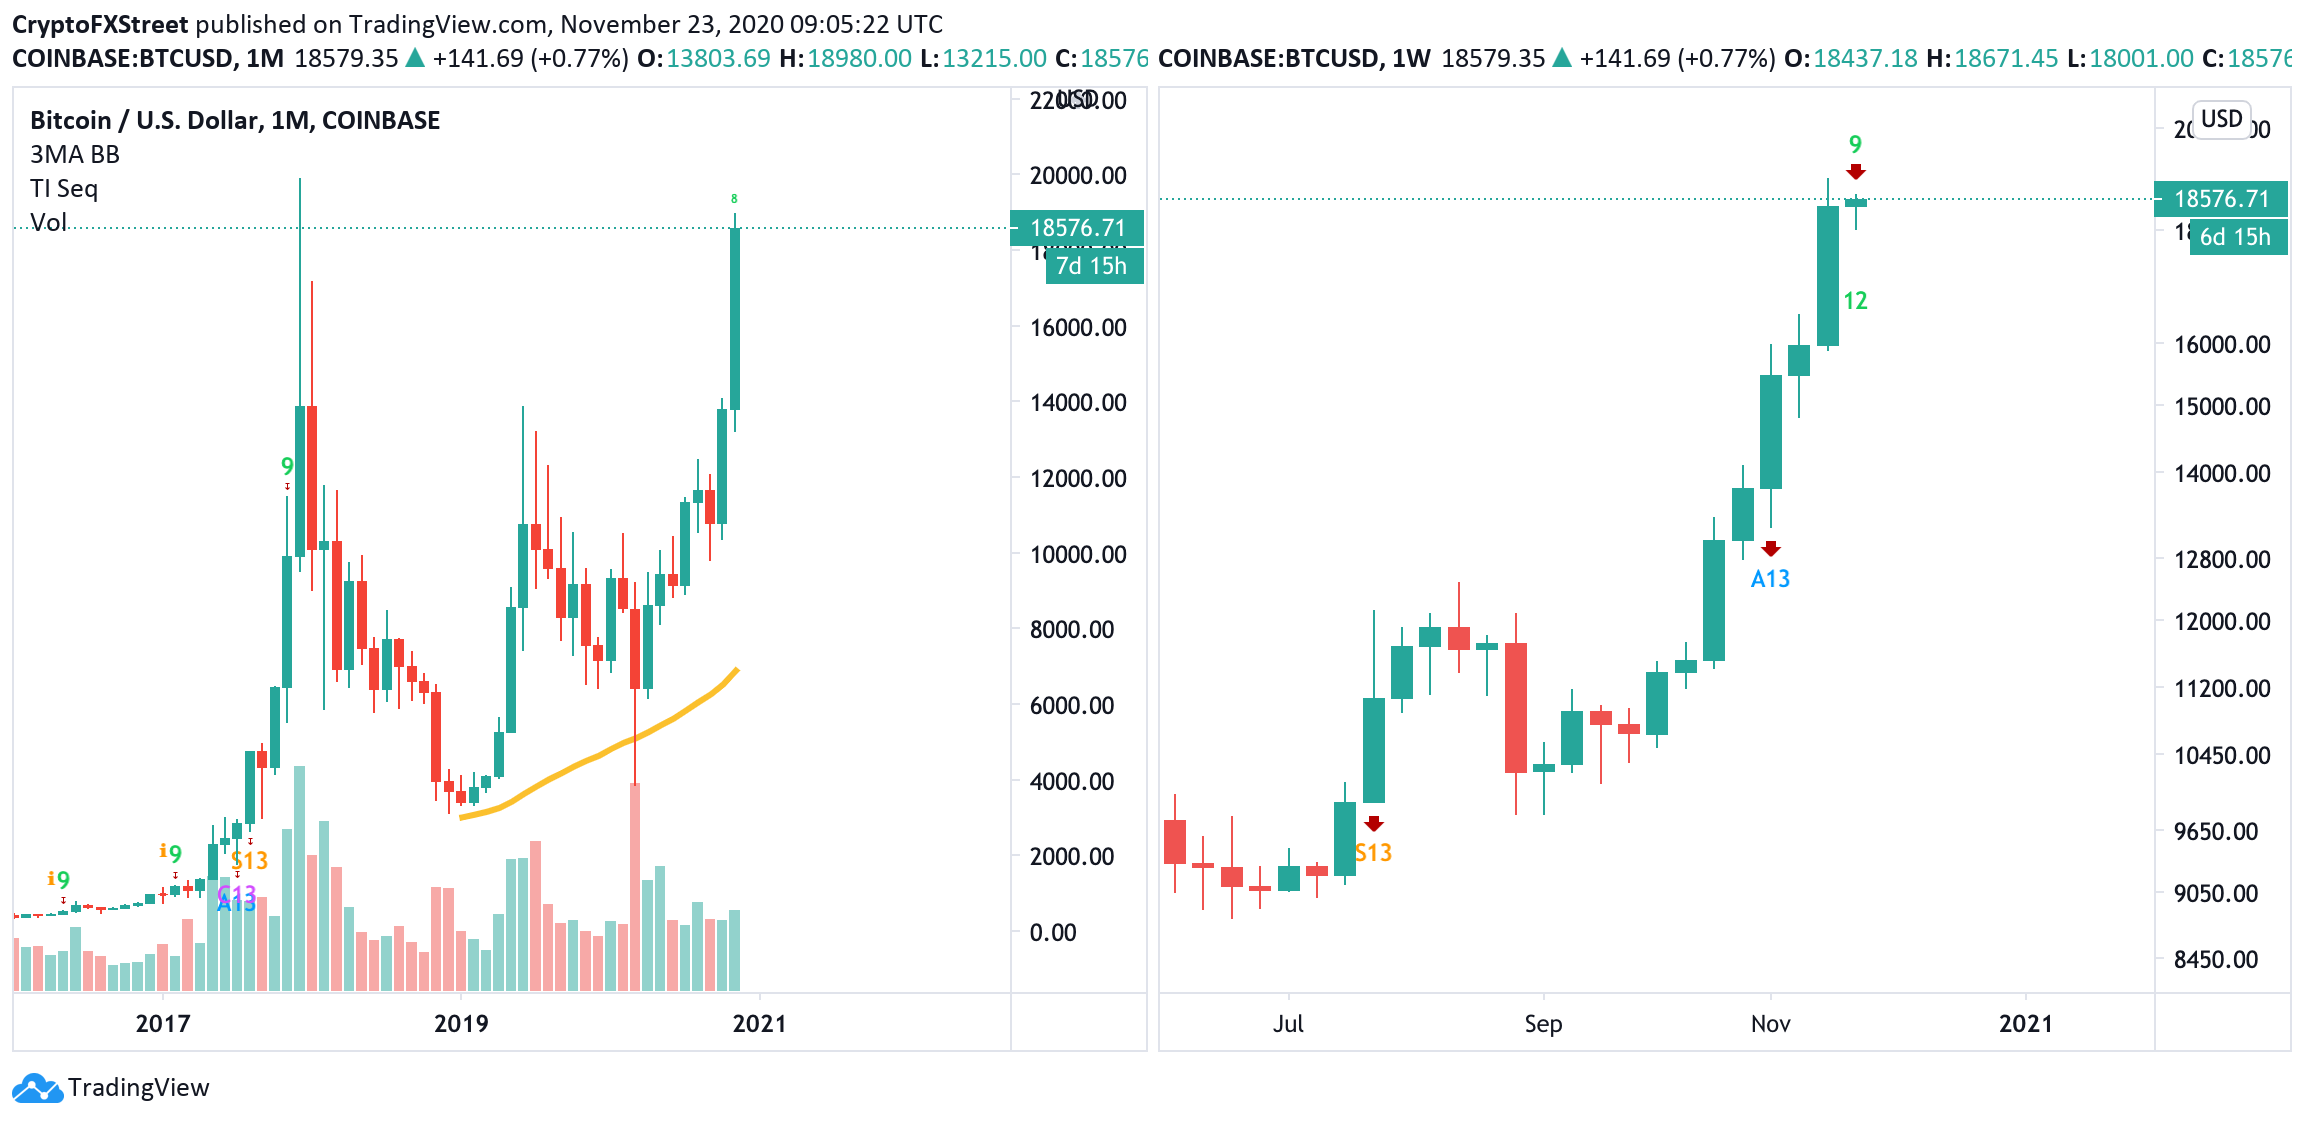 BTC/USD, weekly and daily charts